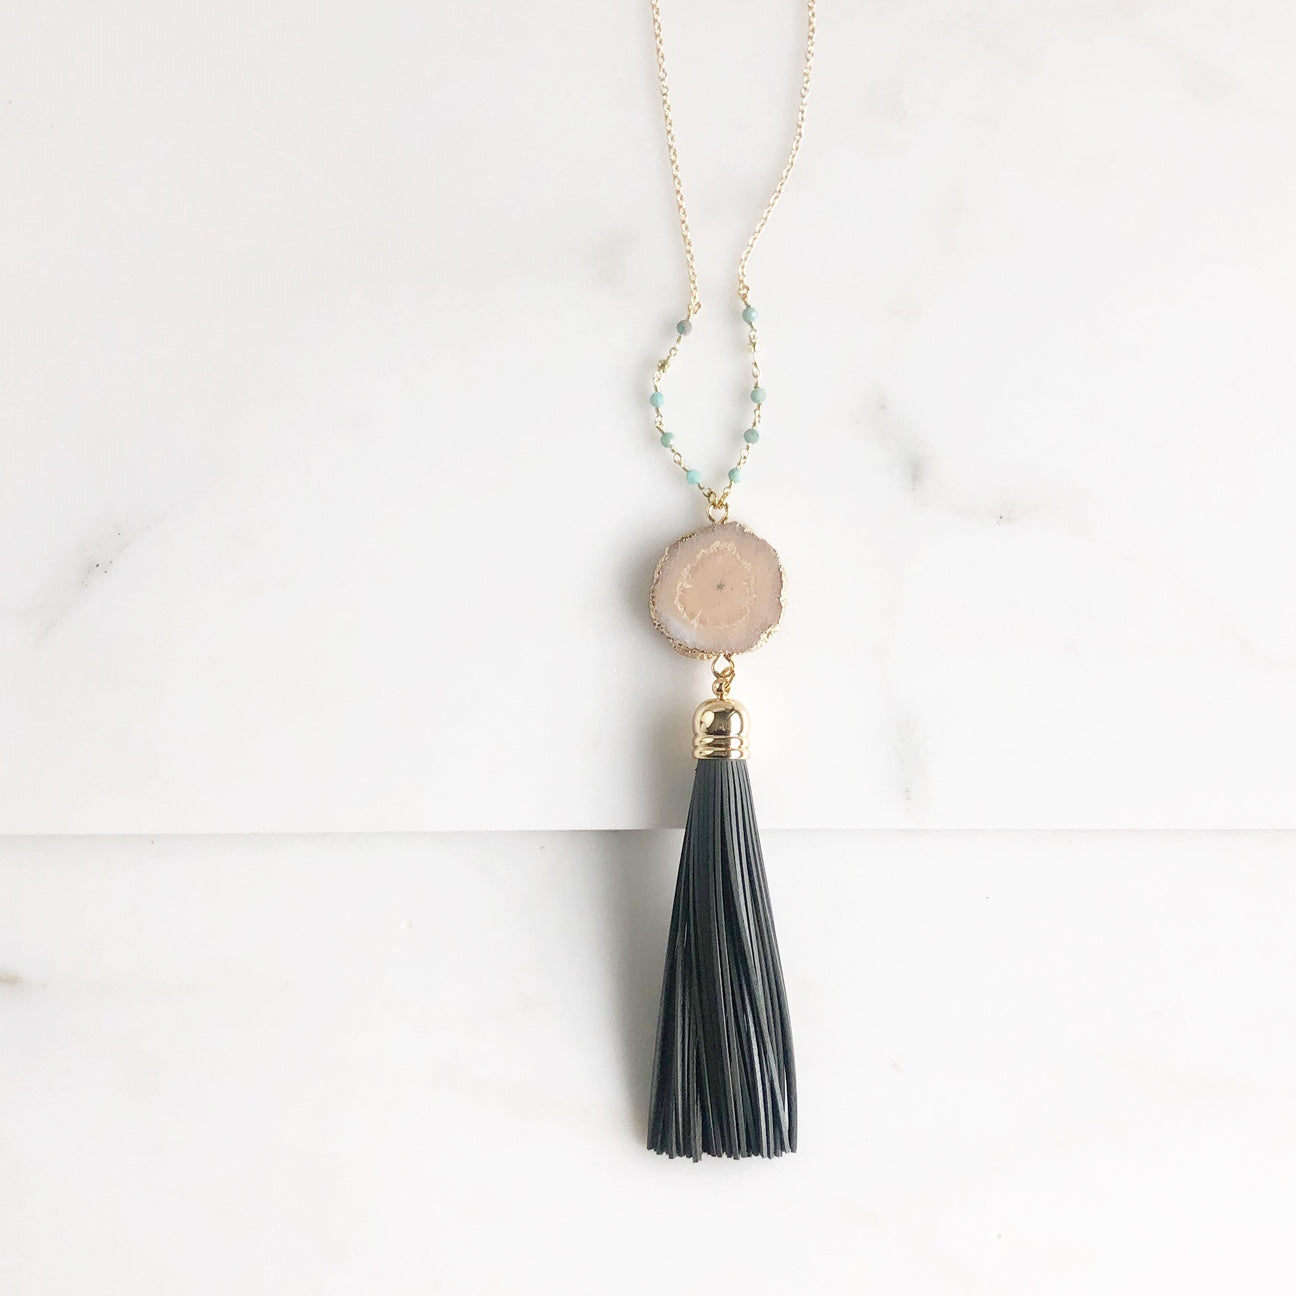 Champagne Solar Quartz Grey Tassel Necklace with Amazonite Stones in Gold.